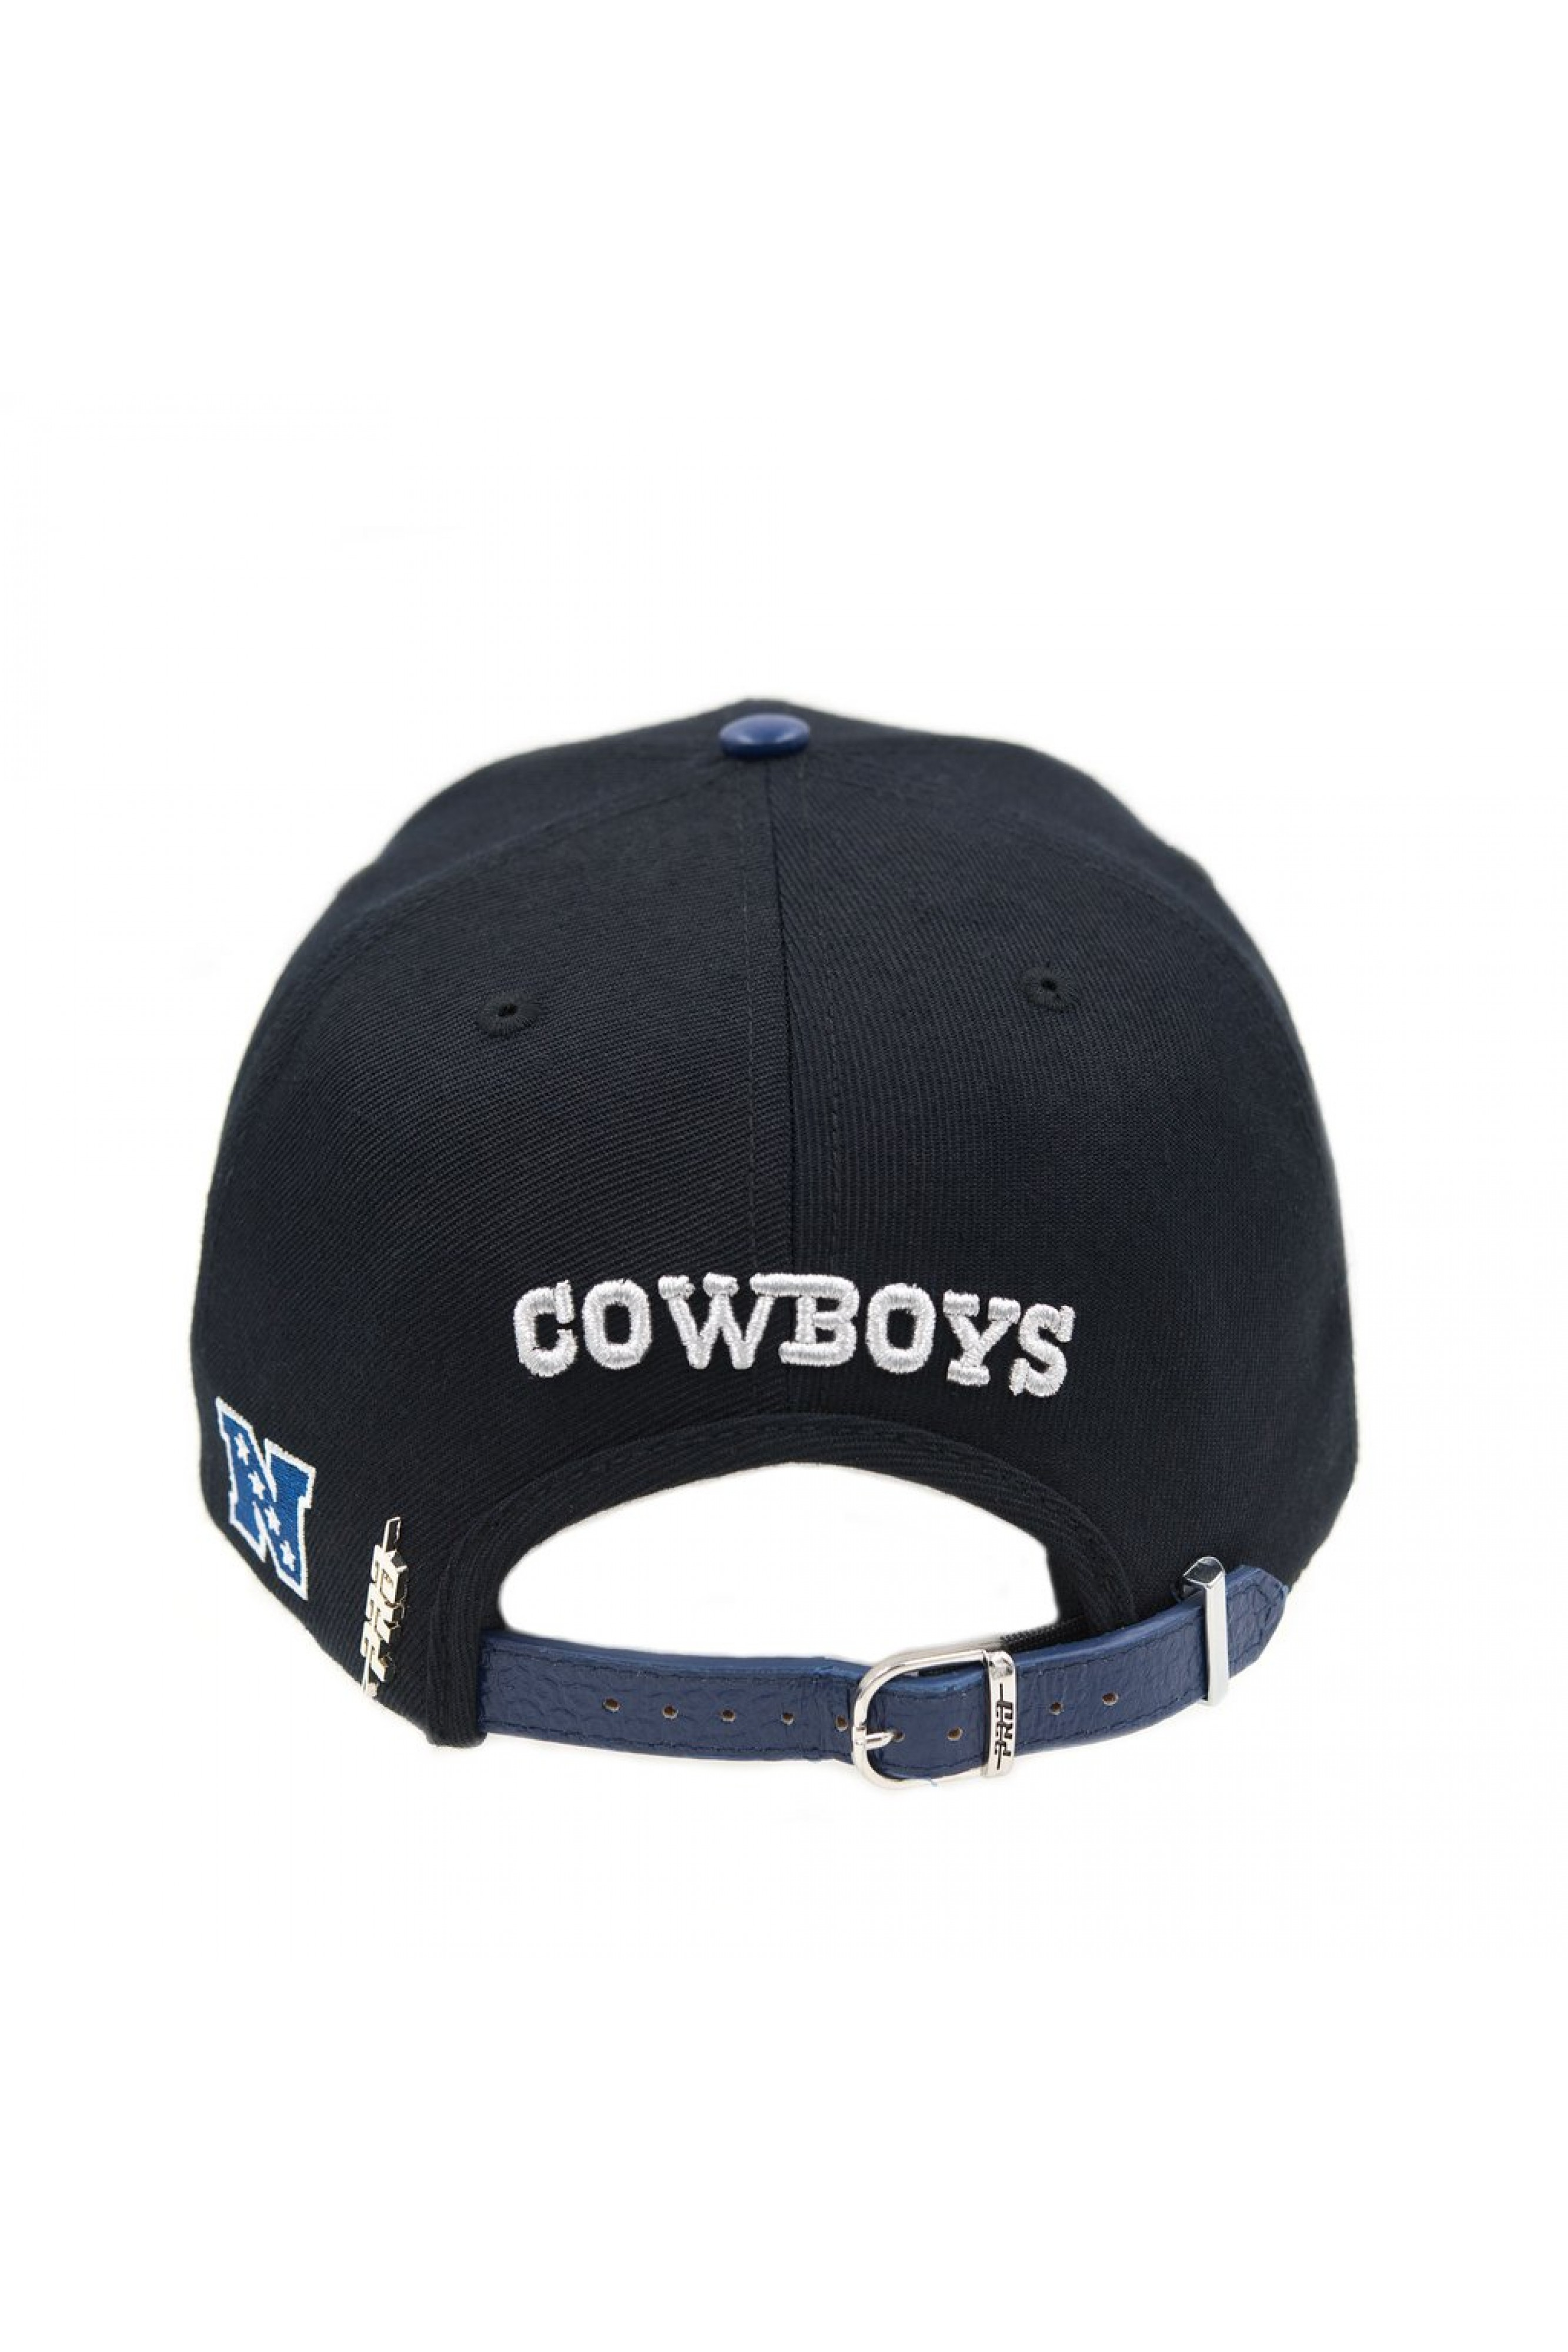 dbe3133845436 Dallas Cowboys Logo Leather Strap Back